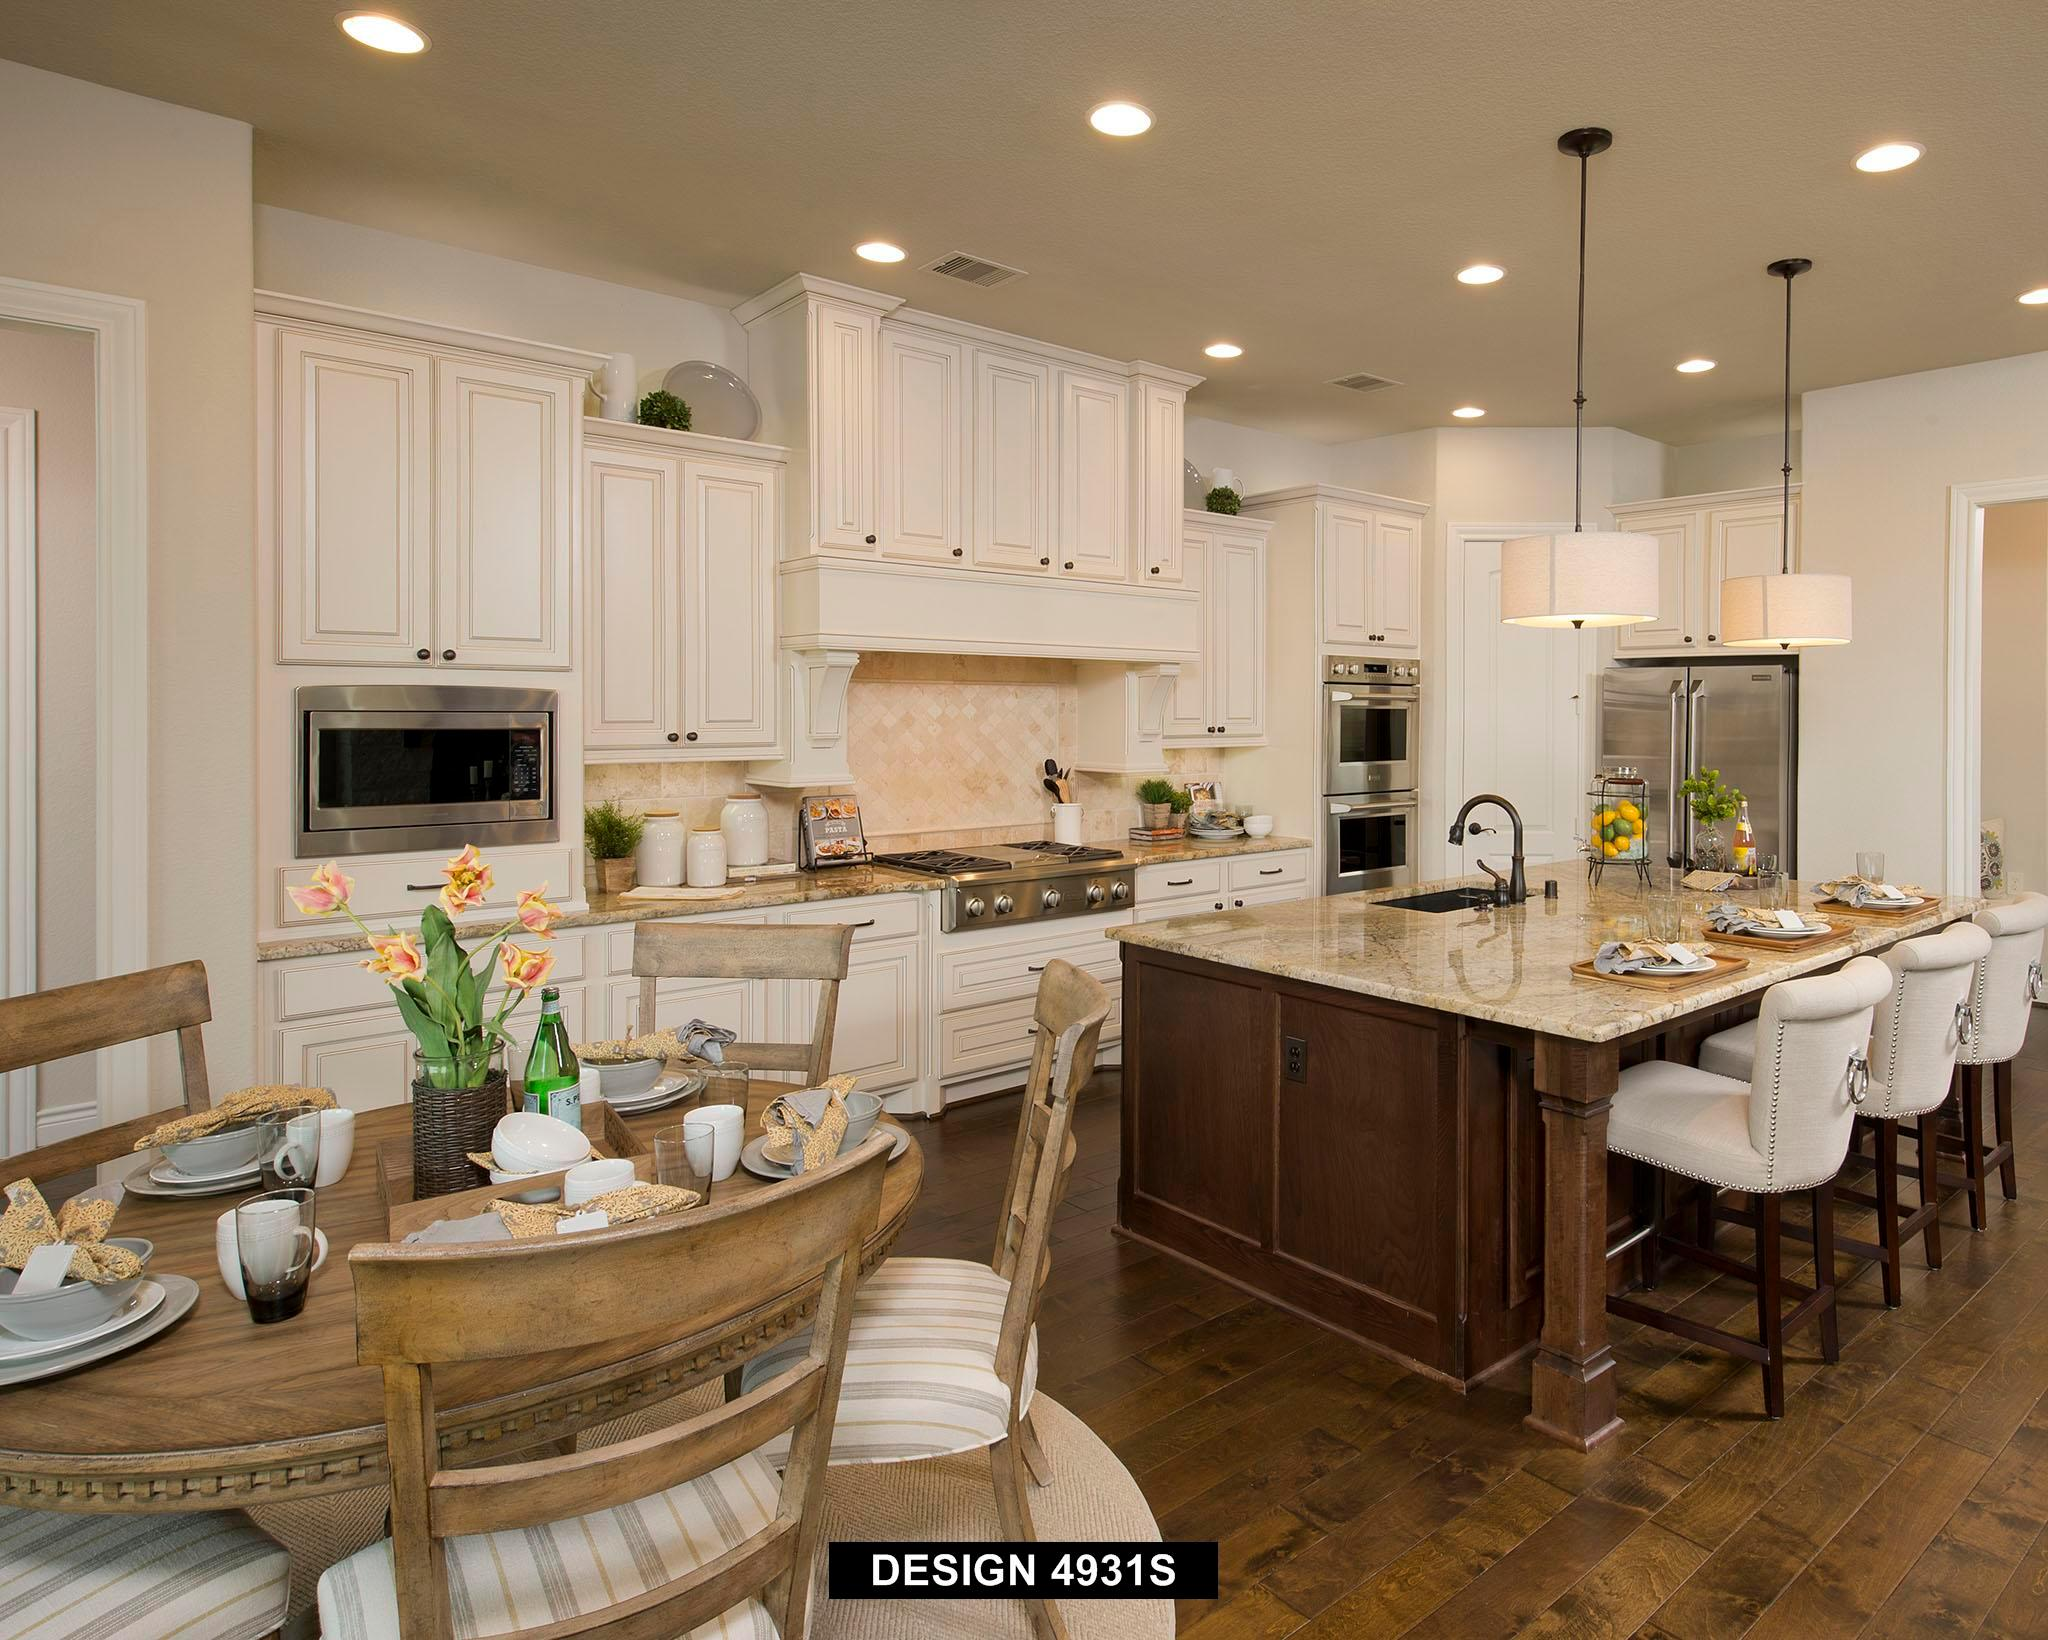 Kitchen featured in the 4931S By Perry Homes in Houston, TX